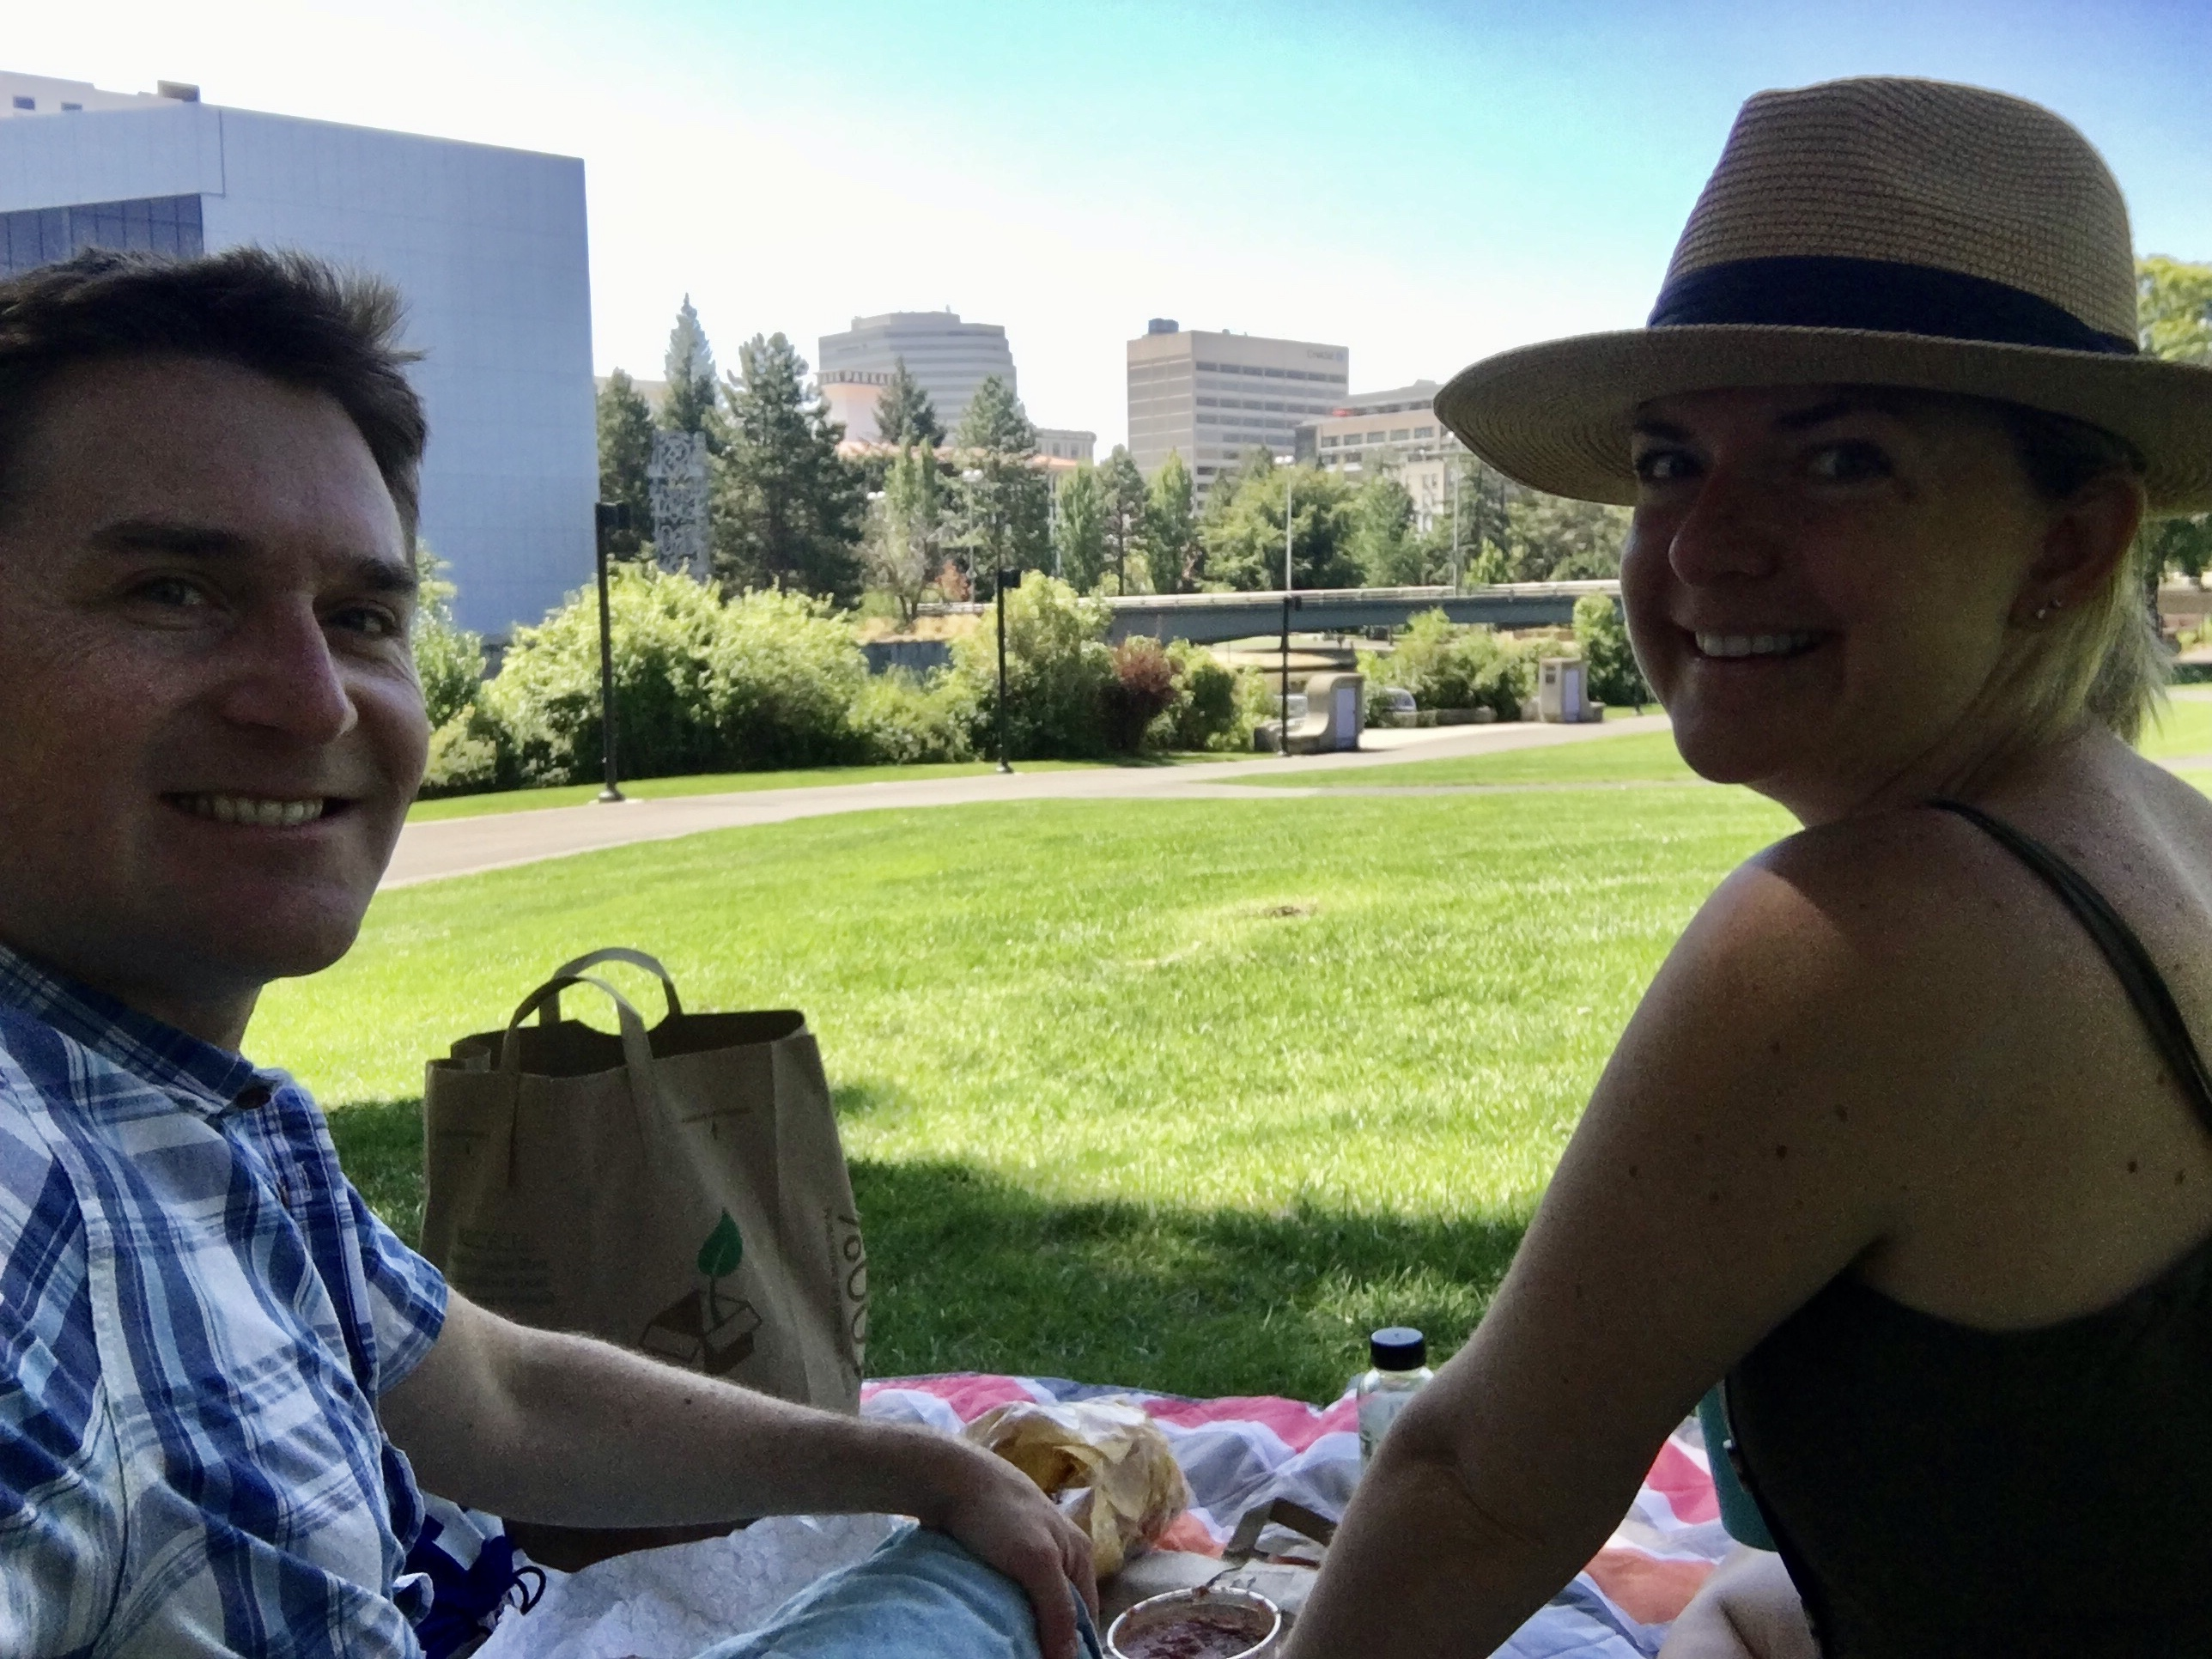 A TK Picnicking Experience